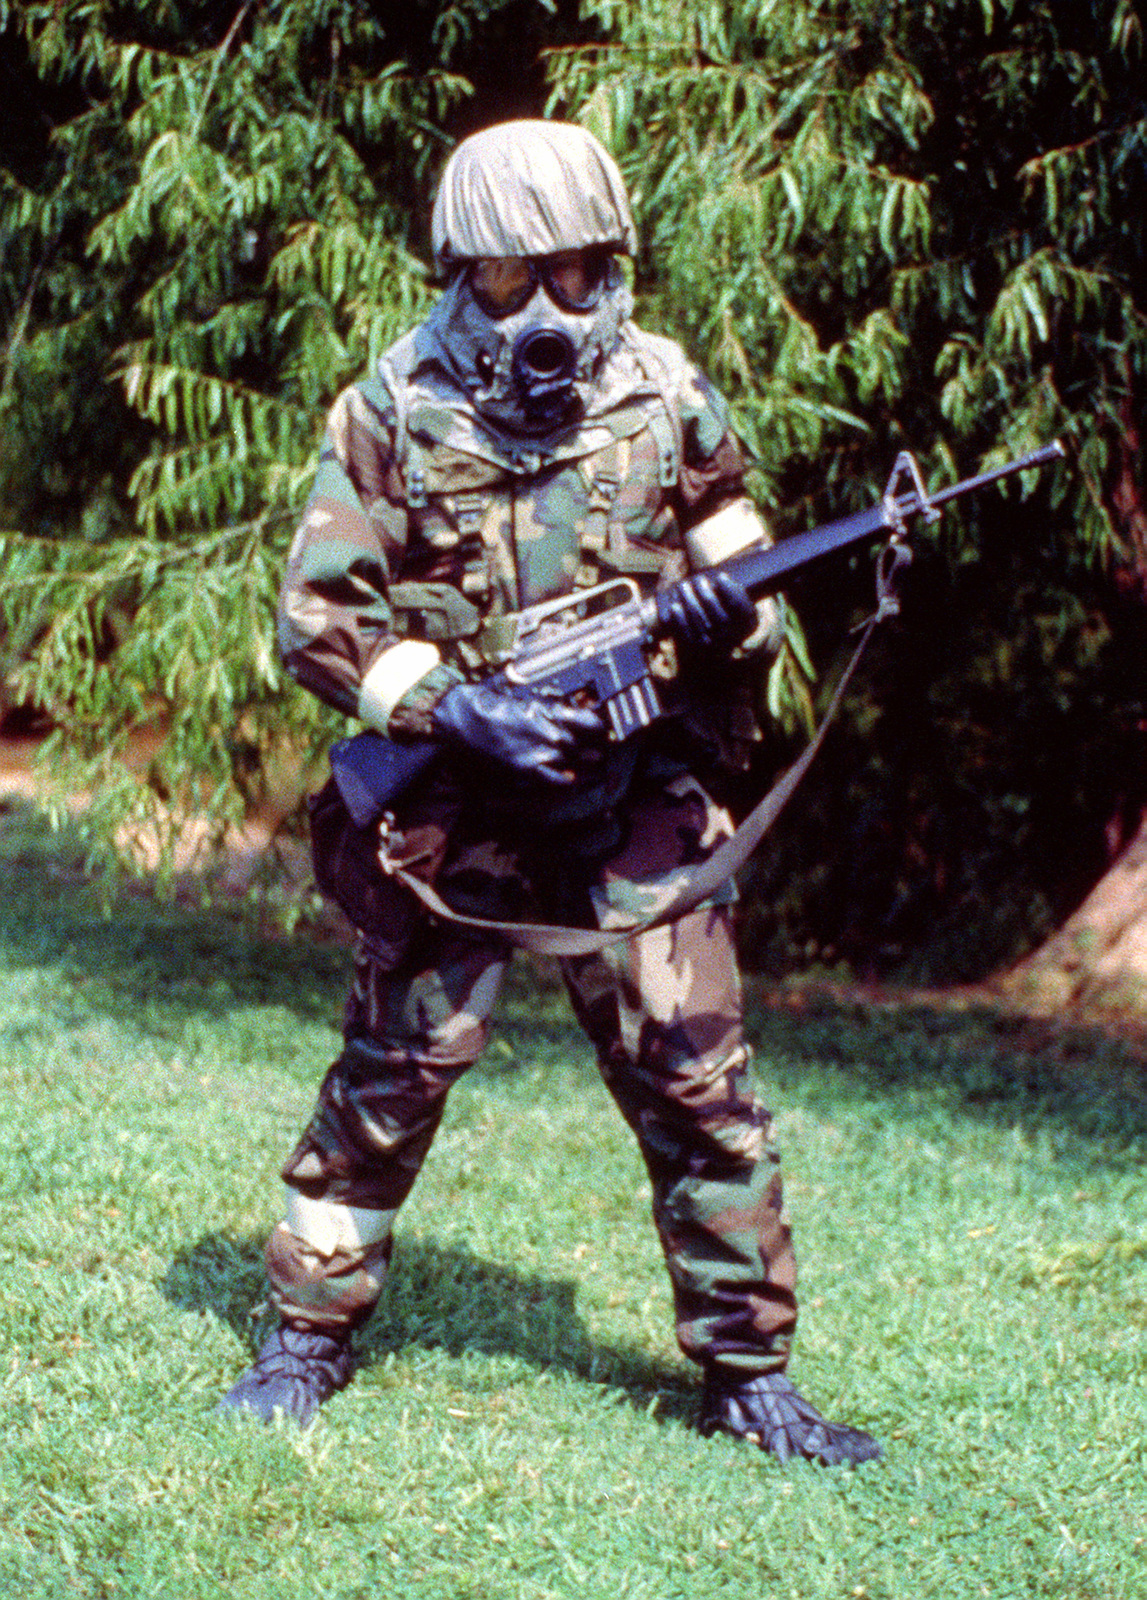 A soldier wearing Mission-Oriented Protective Posture response level 4 (MOPP-4) gear, including an M-17A1 mask, and a M-16A1 rifle